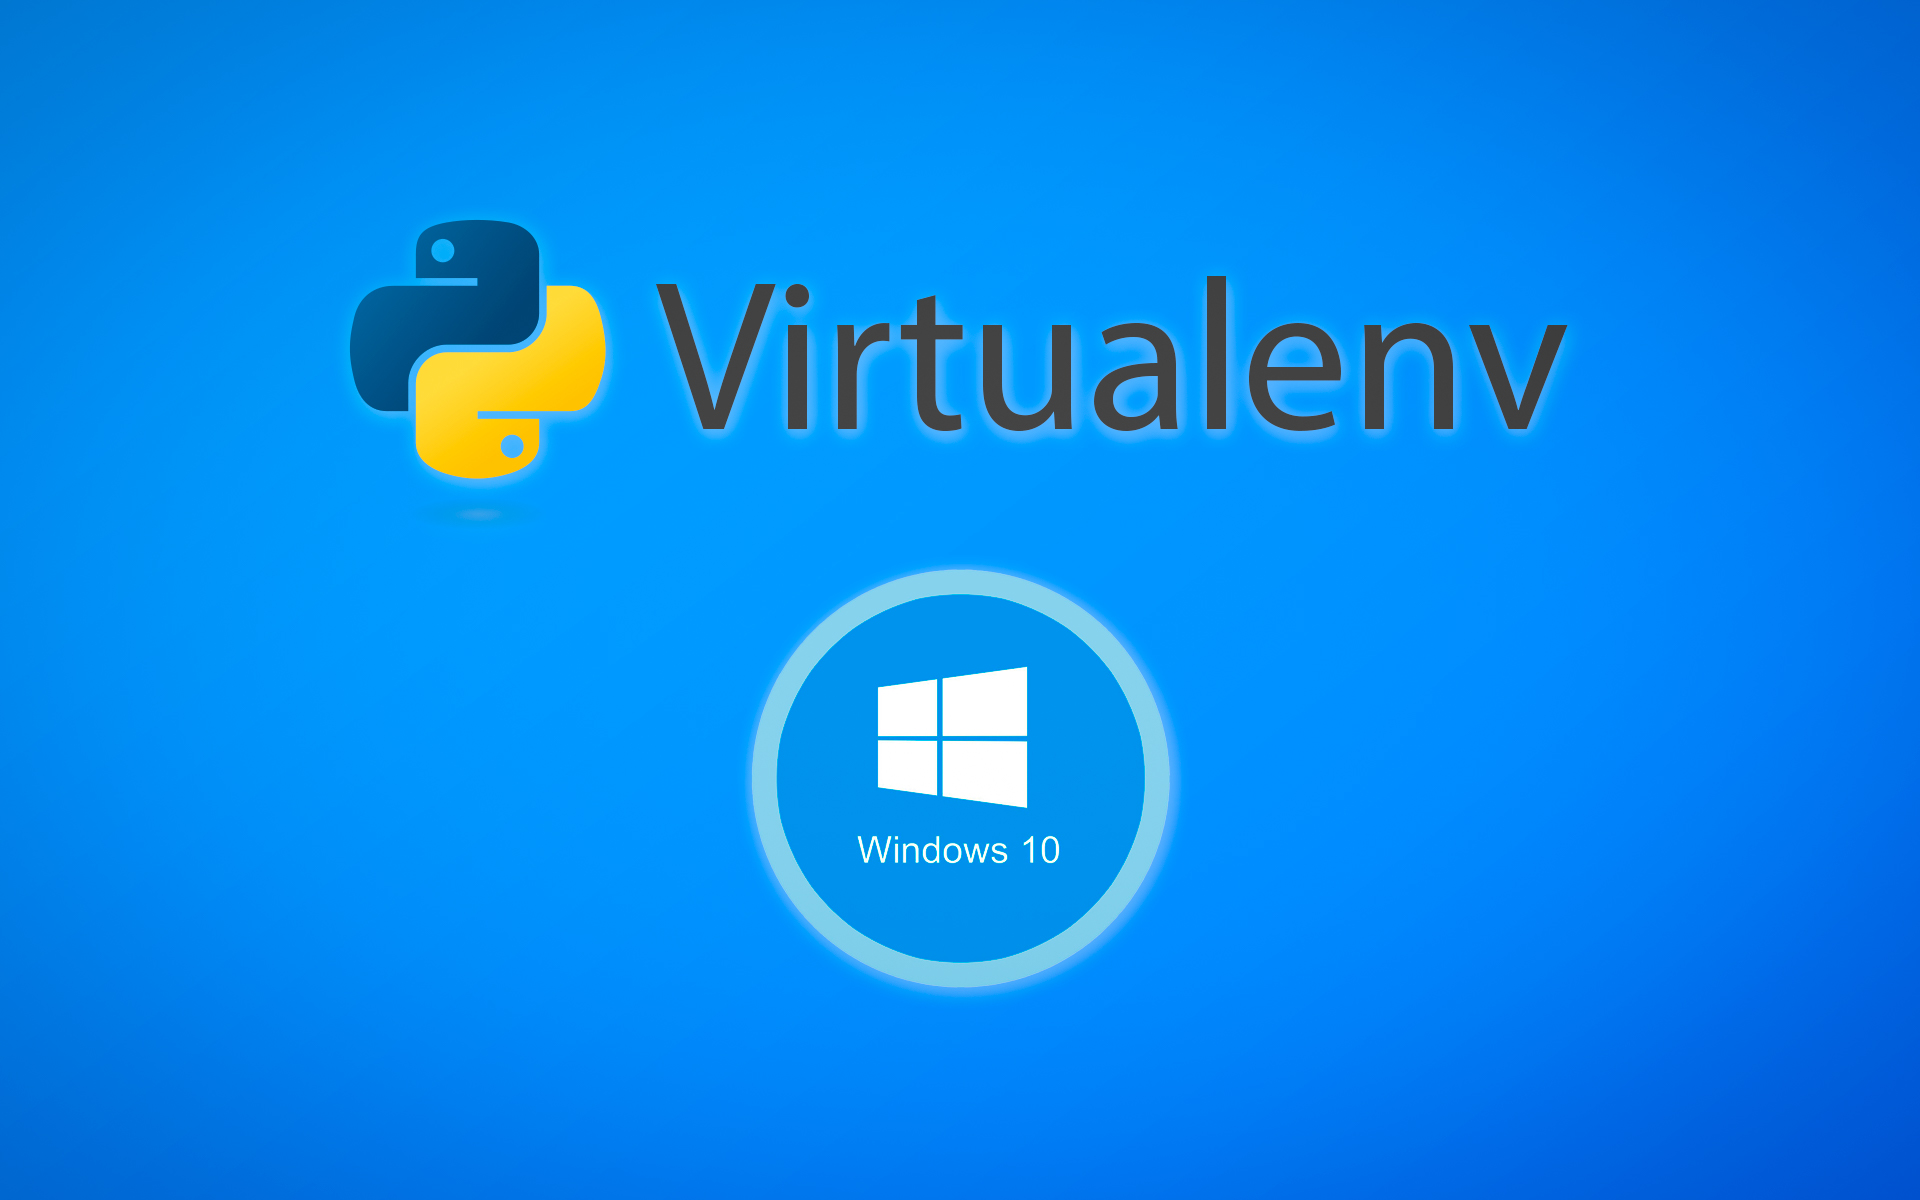 Virtualenv no windows 10